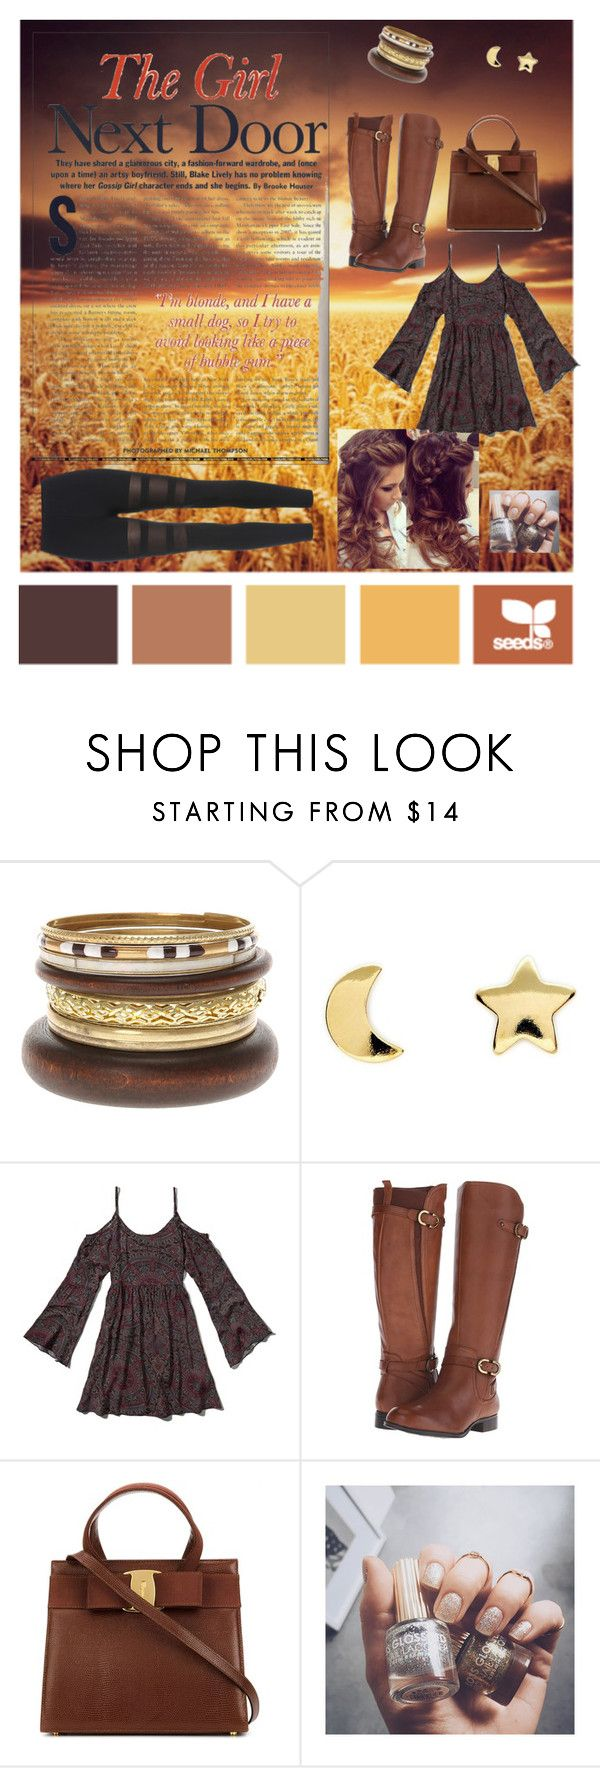 """""""Untitled #119"""" by penny197928 ❤ liked on Polyvore featuring Erica Weiner, Abercrombie & Fitch, Naturalizer, Floss Gloss, women's clothing, women's fashion, women, female, woman and misses"""